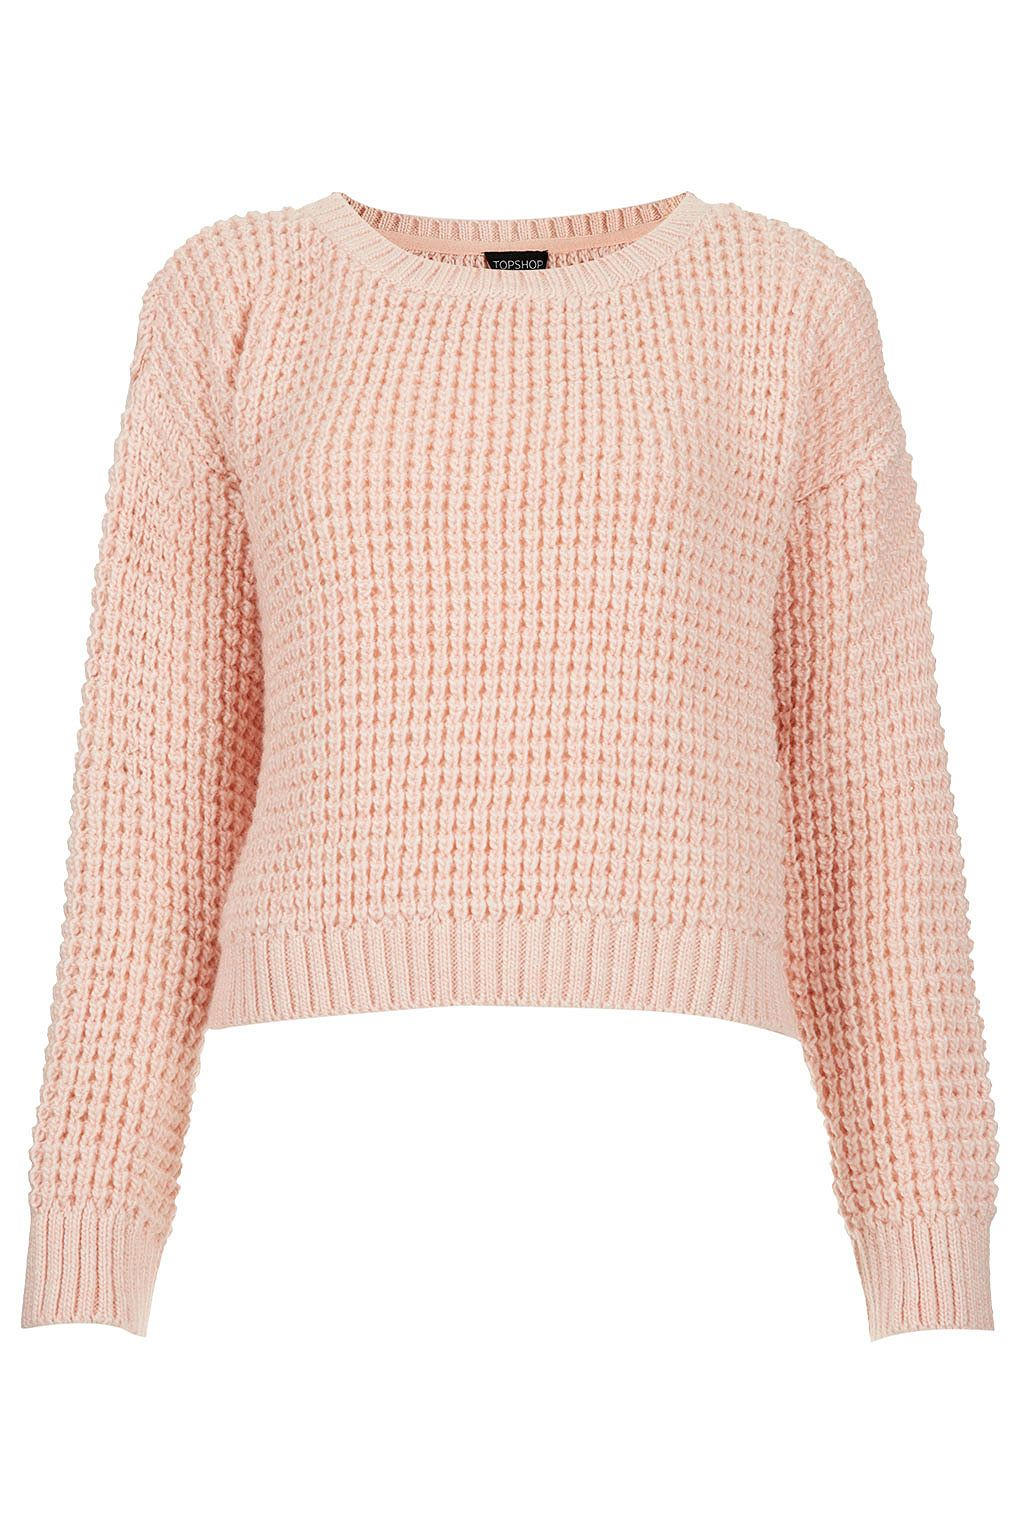 Pink Waffle-knit sweater by Topshop. | Valentine's Day | Pinterest ...